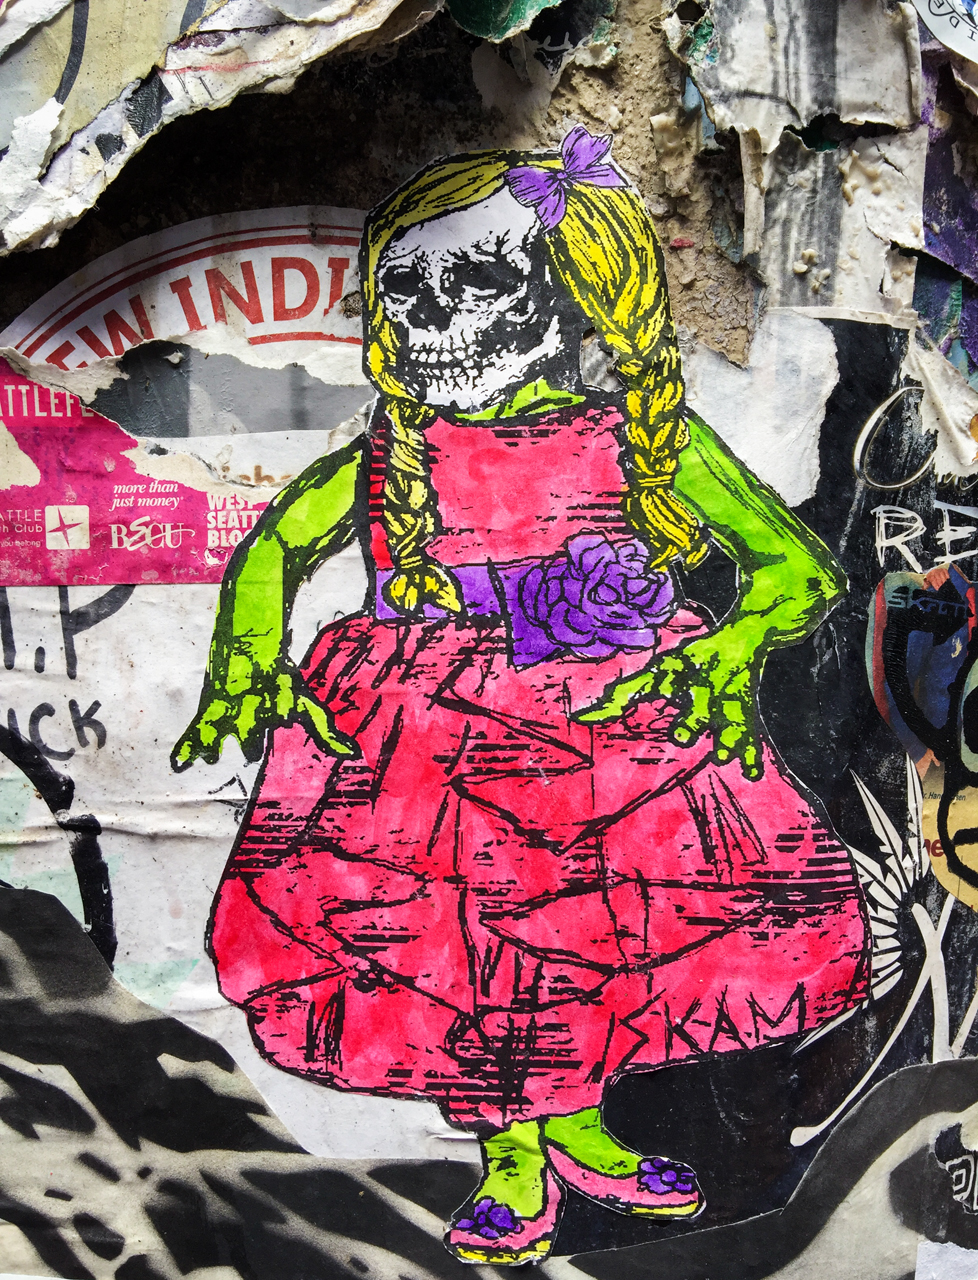 Well-dressed zombie child - wheatpaste by Skam